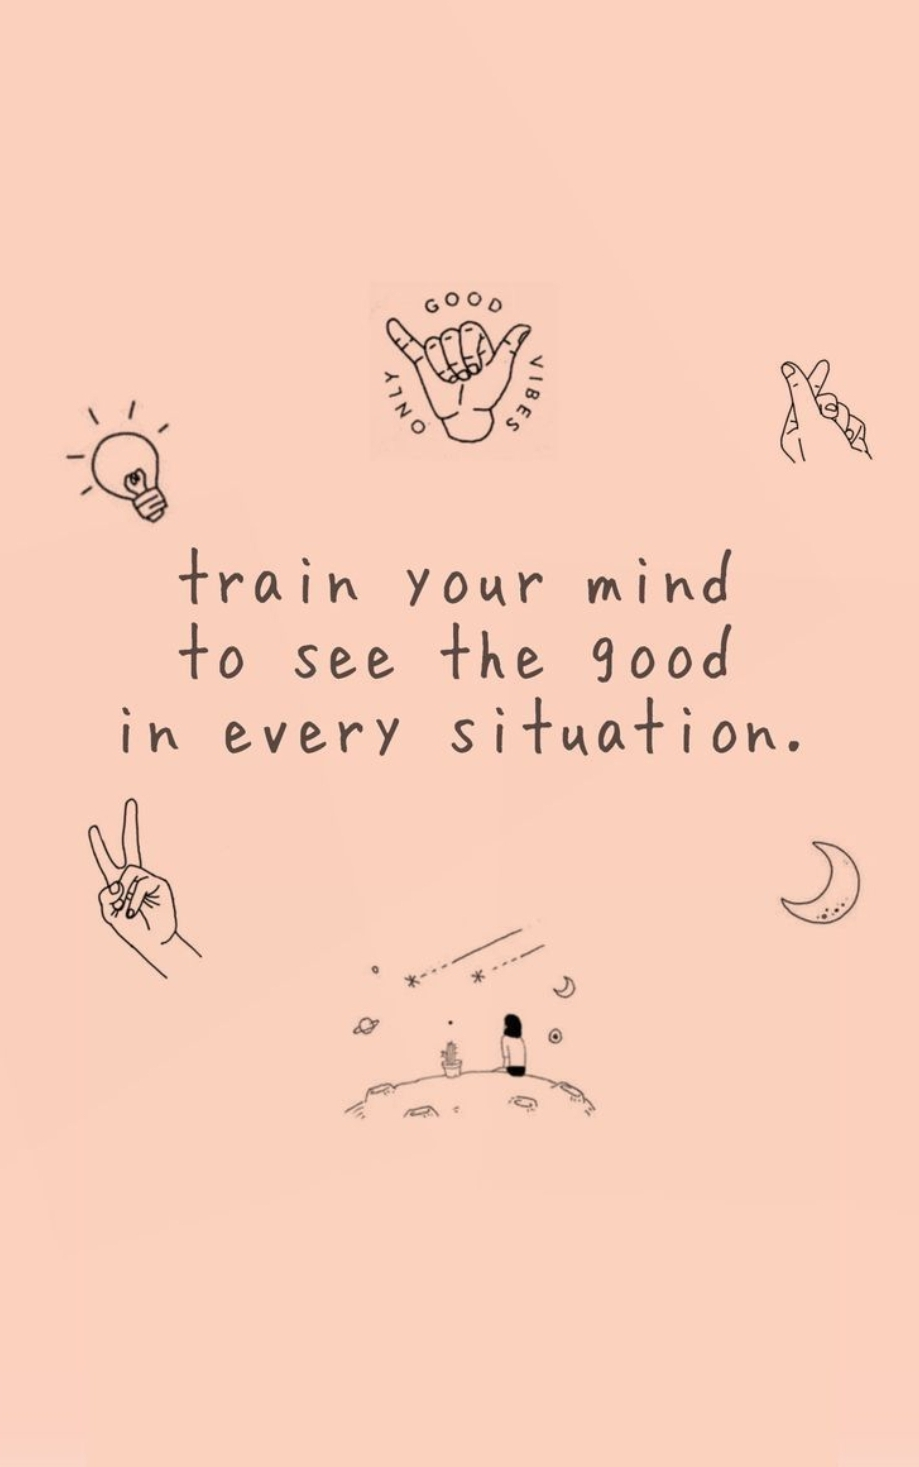 [Image] train your mind